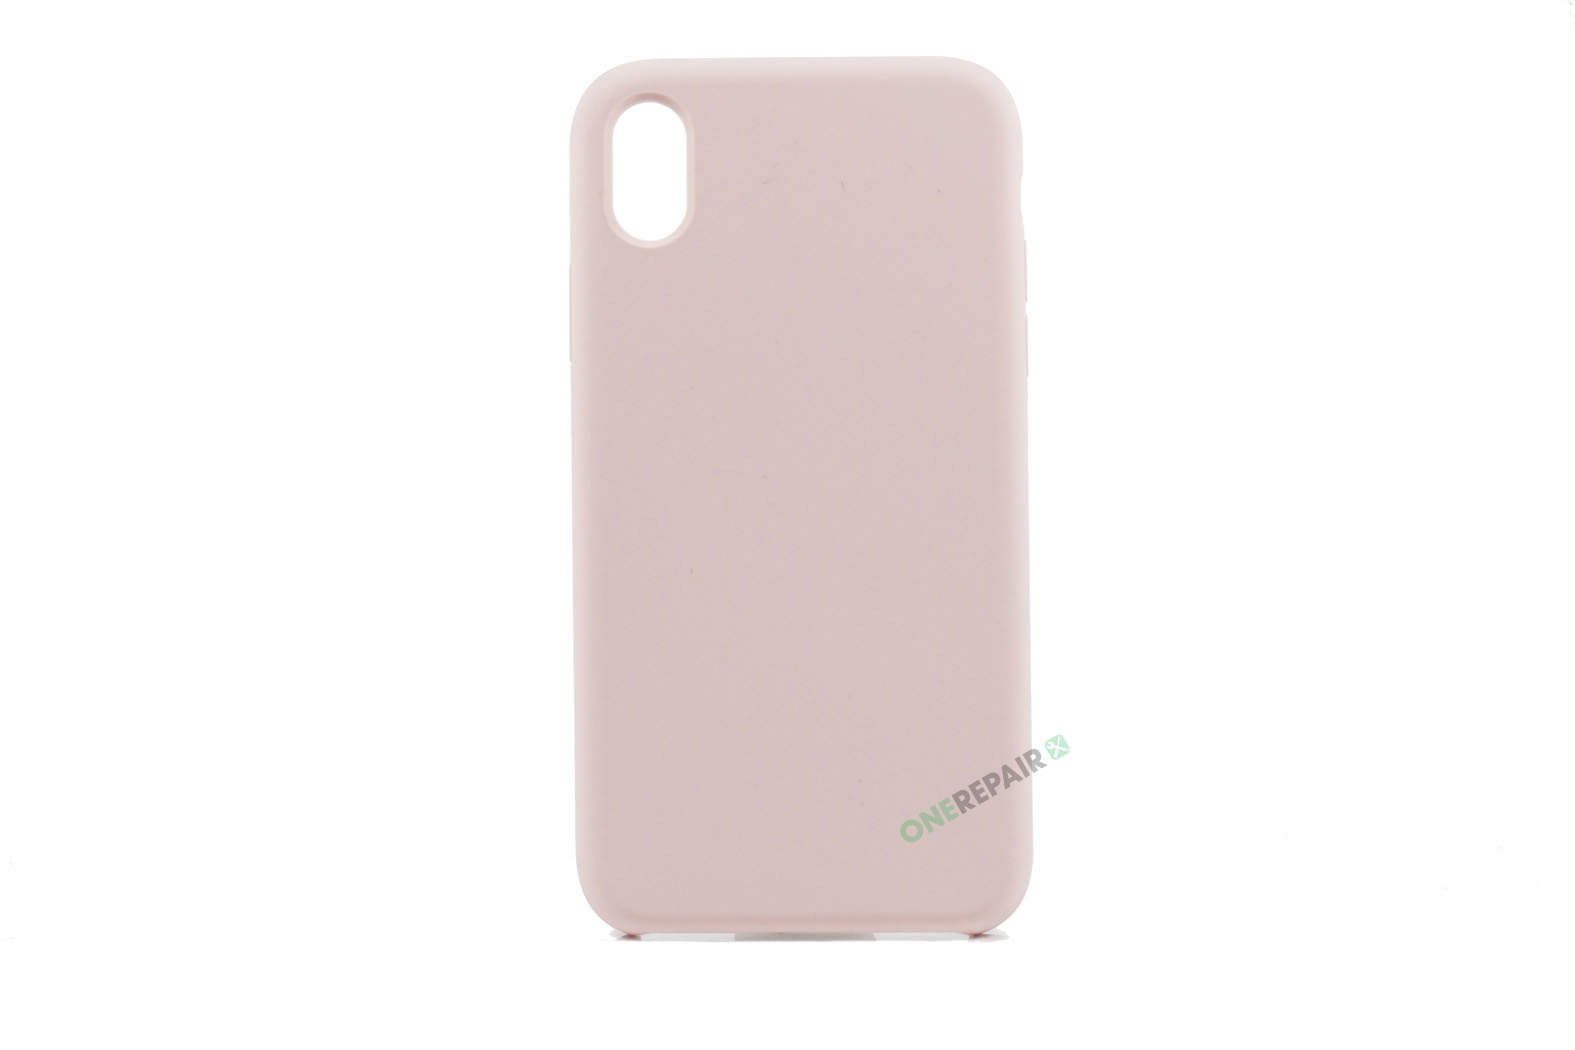 iPhone, X Xs Max, Silikone, Silikonecover, Mobilcover, Mobil cover, billig, Beige, Patel, lyseroed, lyserød,